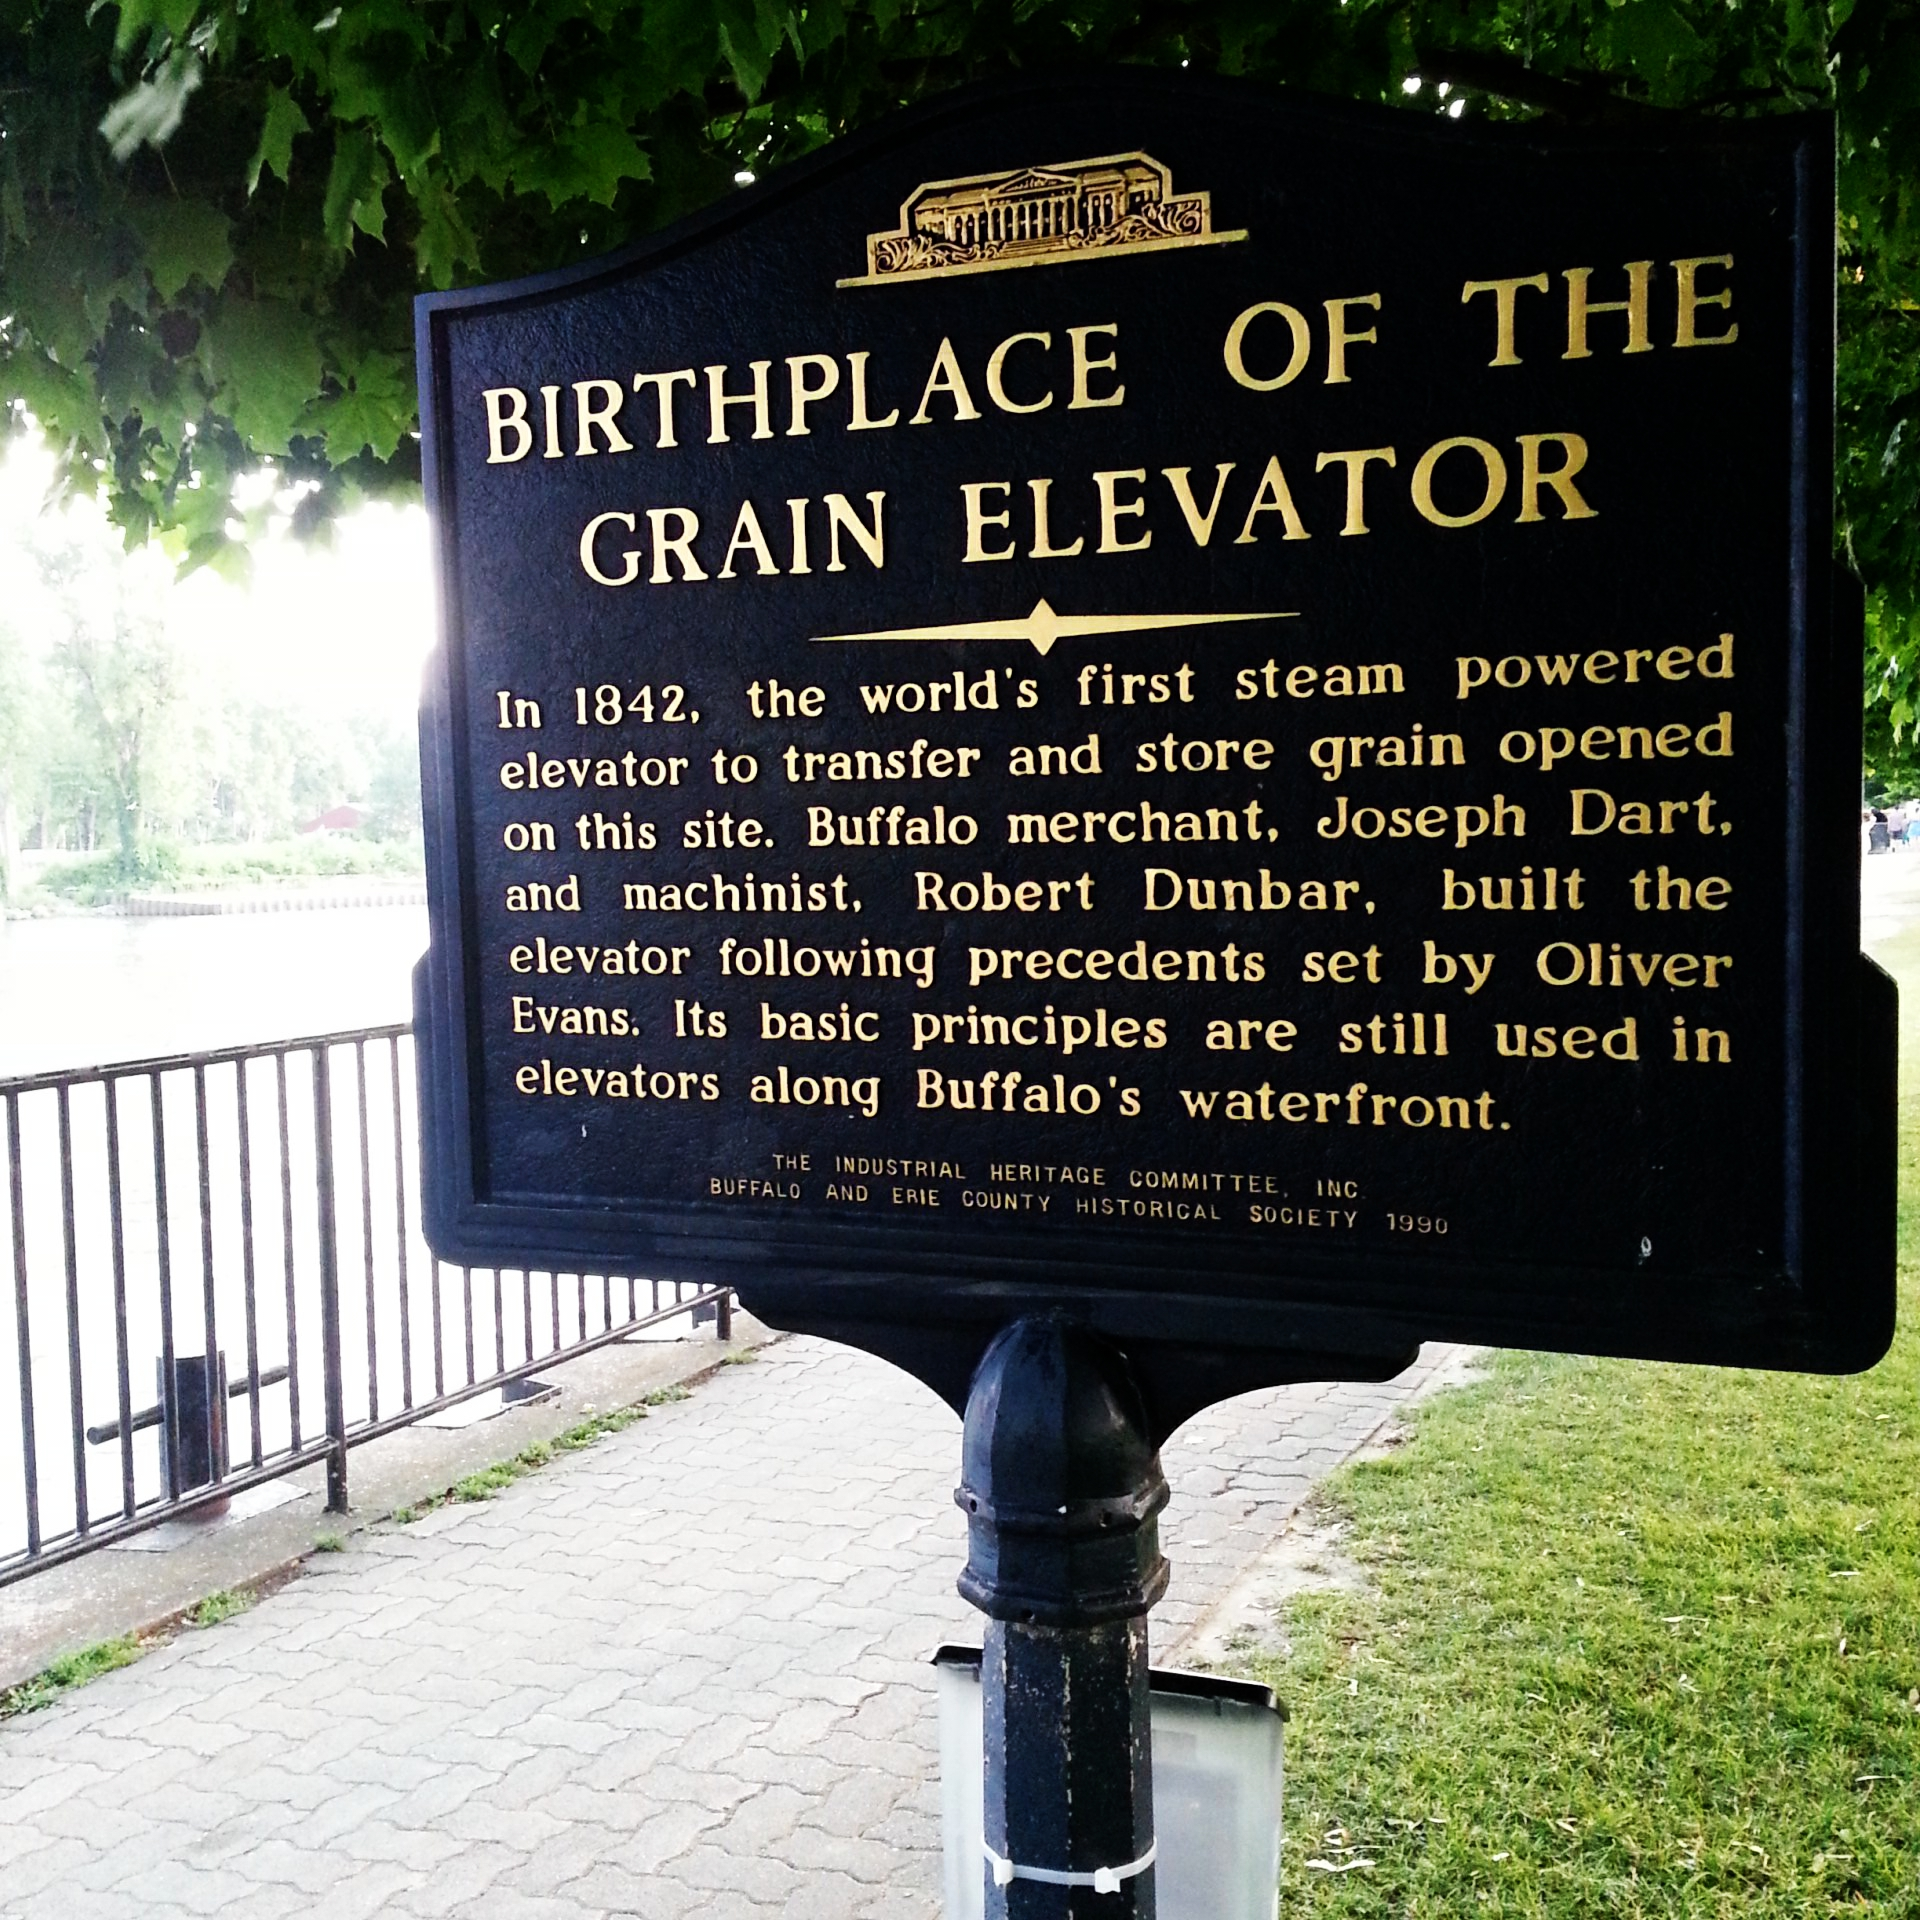 Buffalo, NY is the birthplace of the grain elevator.